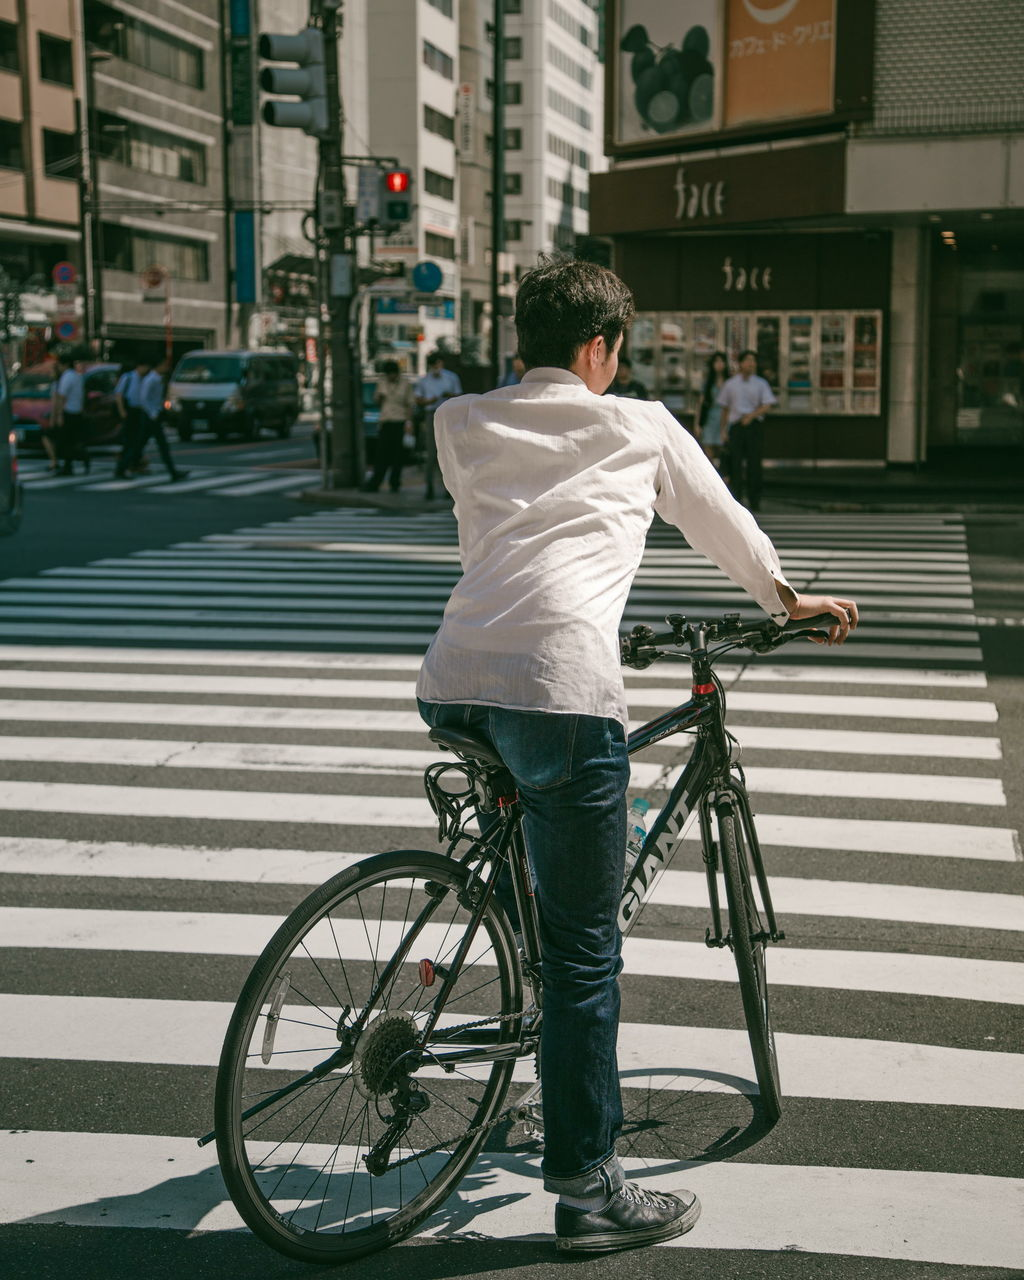 bicycle, building exterior, rear view, real people, full length, transportation, city, street, architecture, city life, one person, casual clothing, built structure, mode of transport, city street, outdoors, men, land vehicle, day, lifestyles, road, one man only, young adult, adult, people, adults only